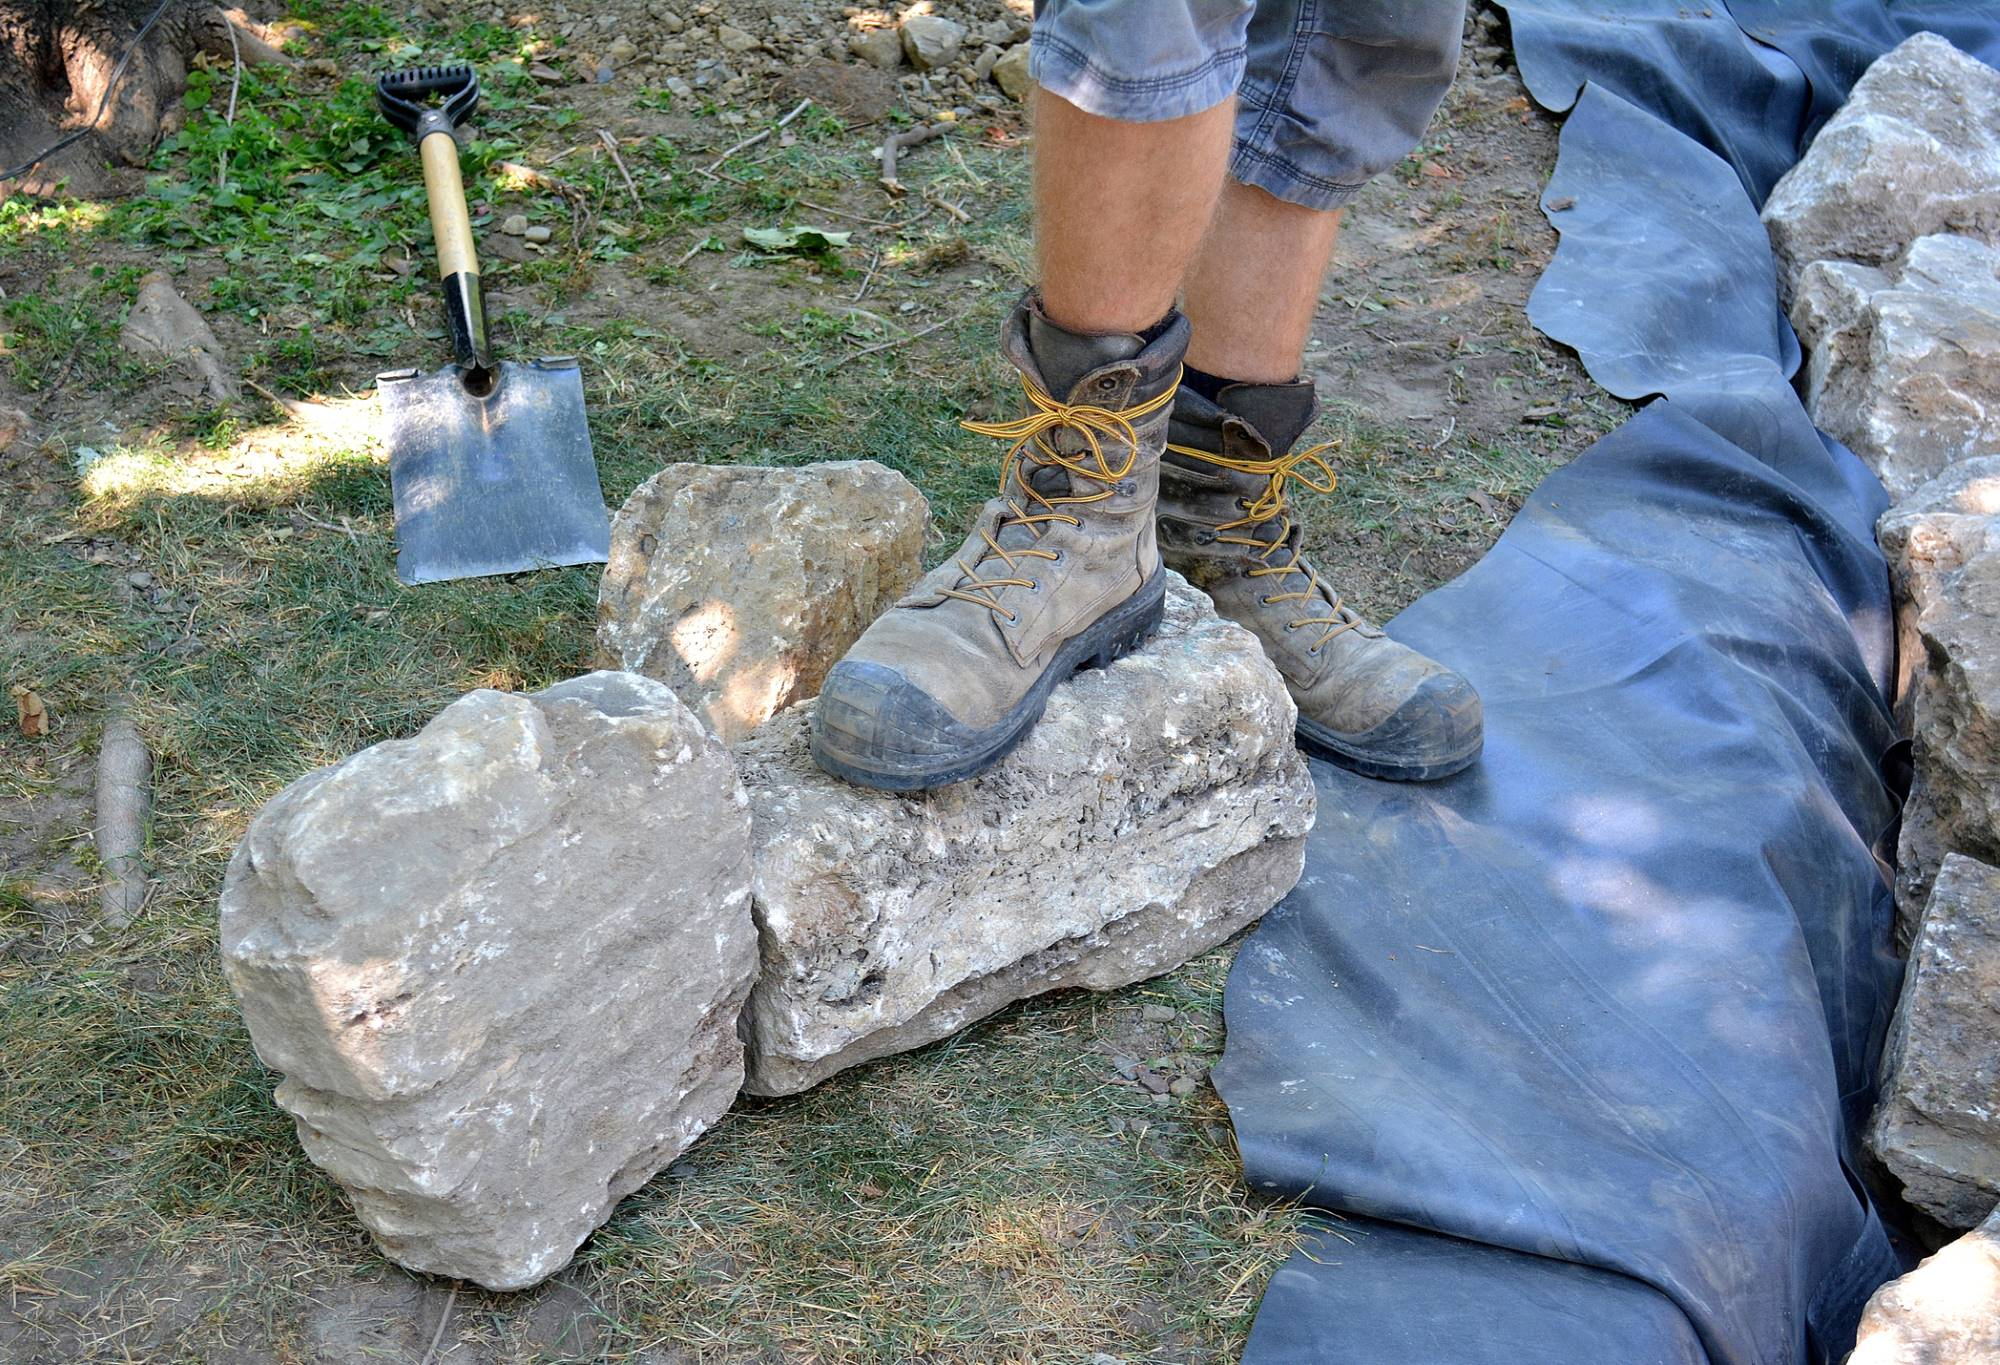 Photo of feet and work boots of a construction worker, with some decorative stone and equipment, that they will use for a landscaping project.